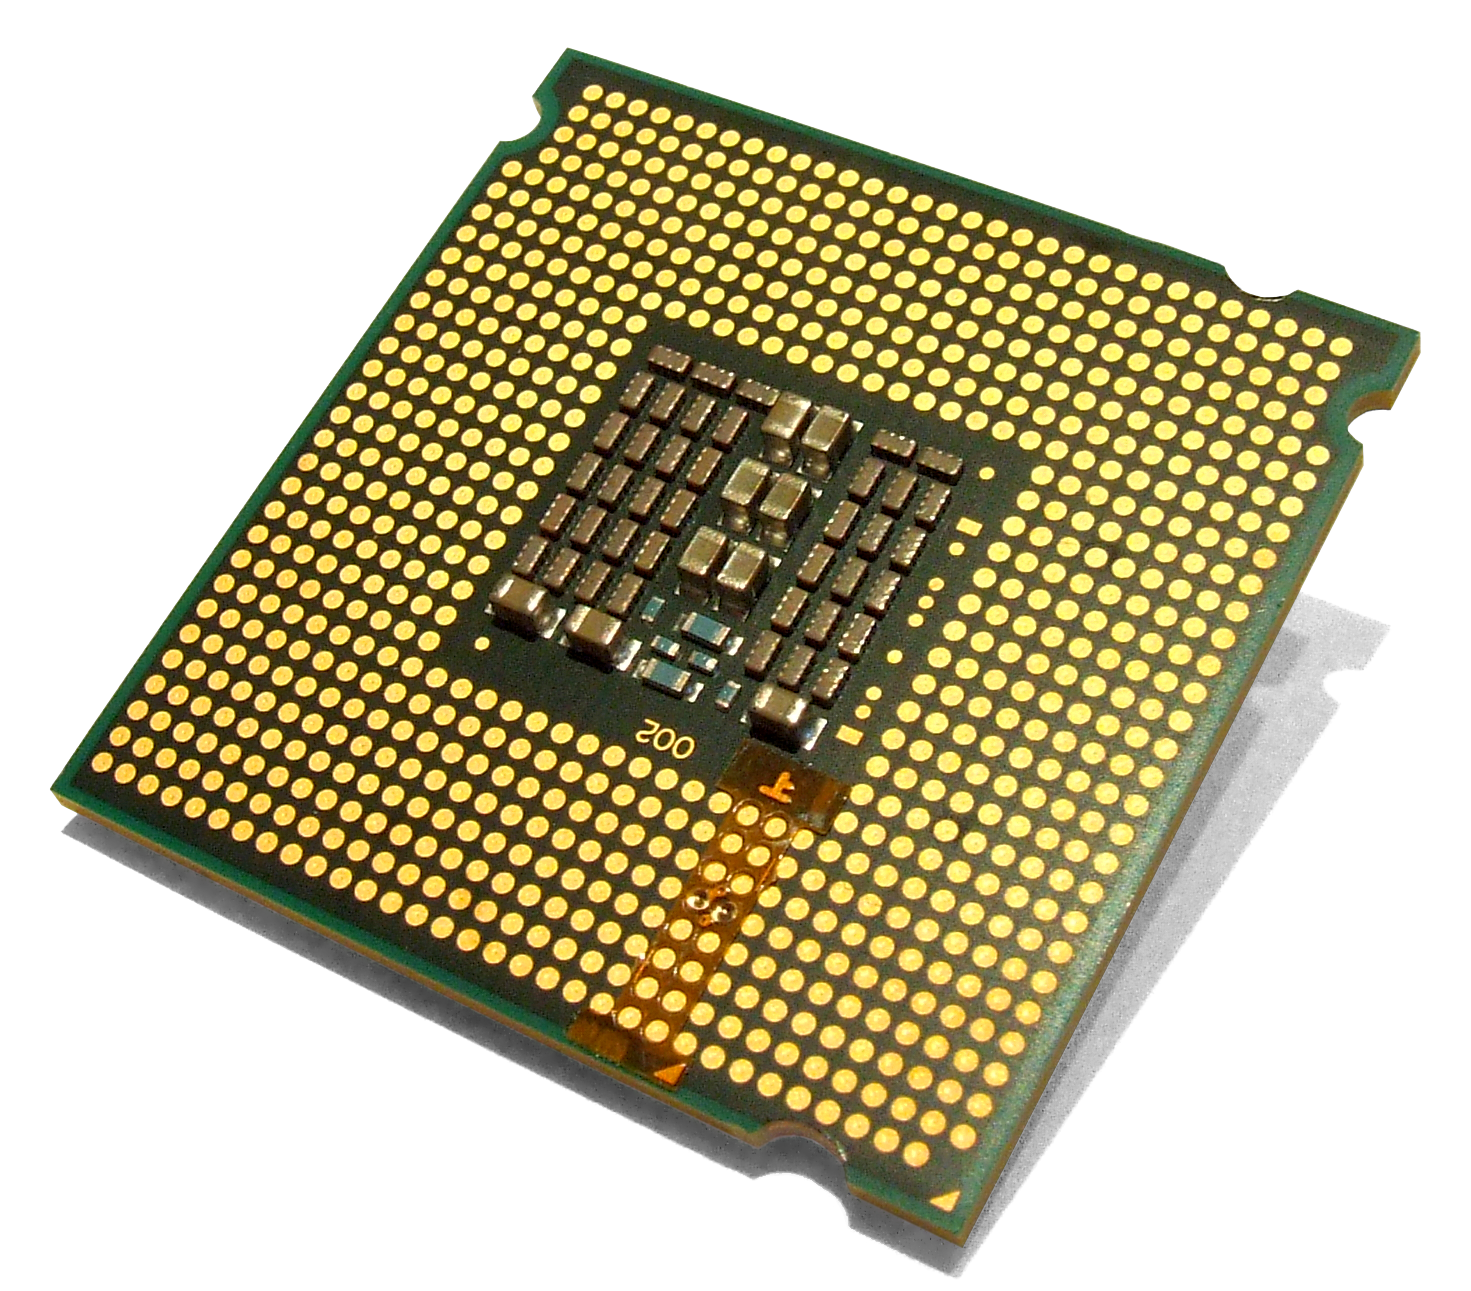 File:Intel Xeon E5450 (with 775 mod) png - Wikimedia Commons